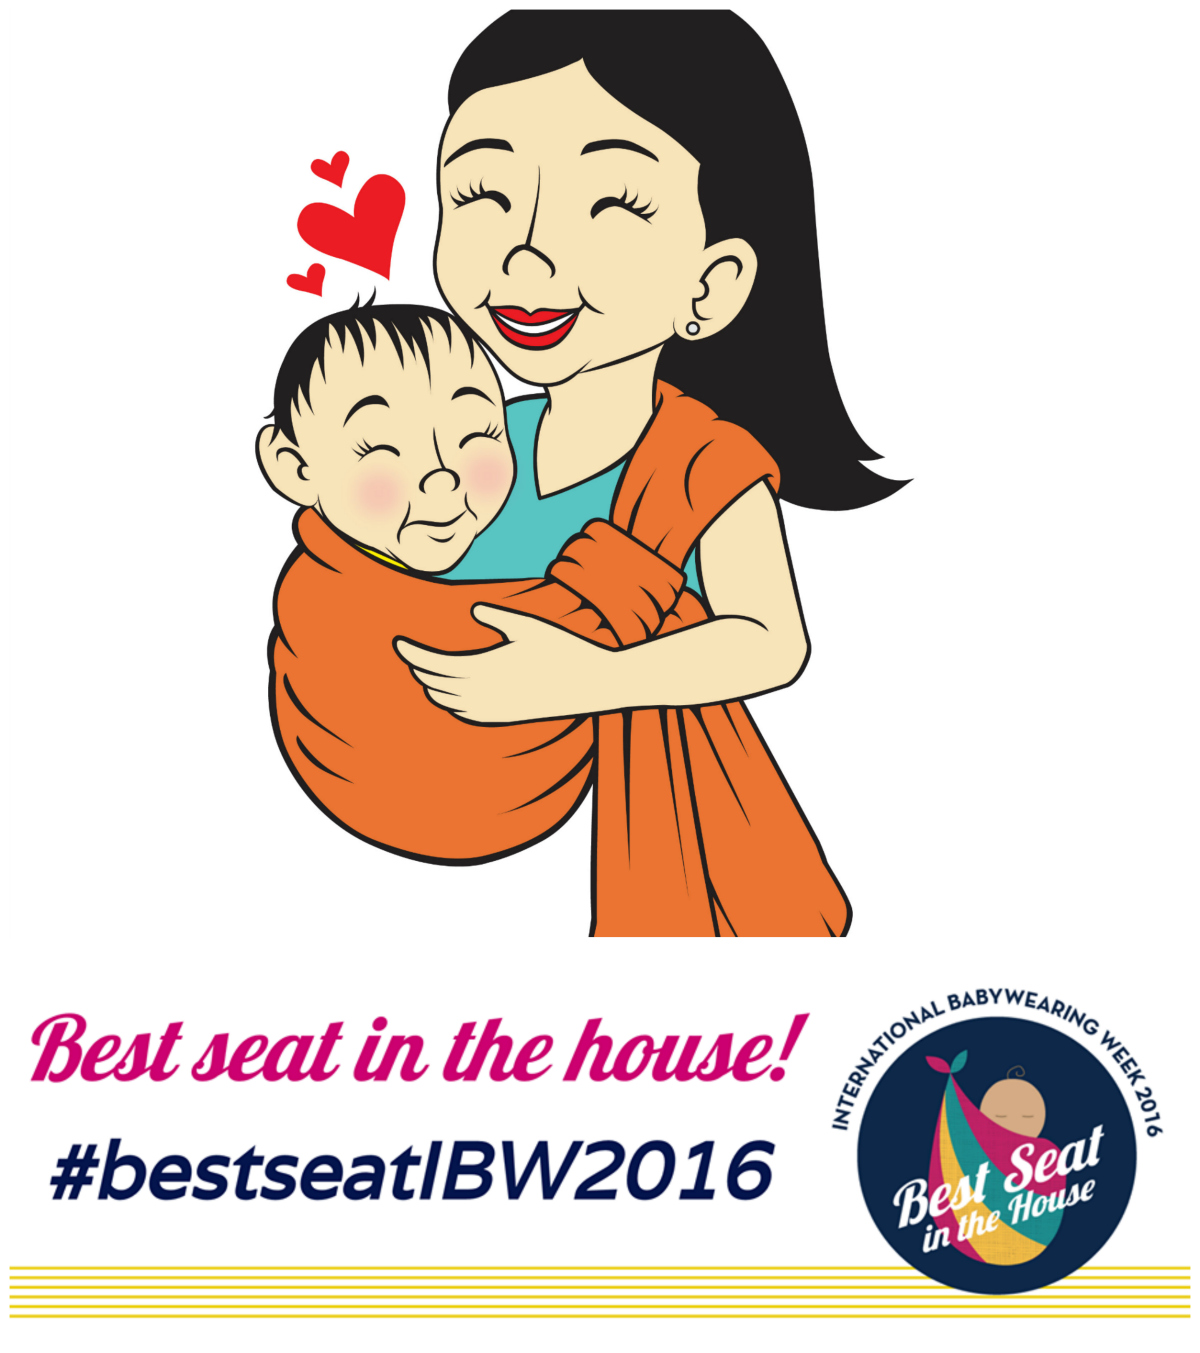 International Babywearing Week 2016: Giveaways